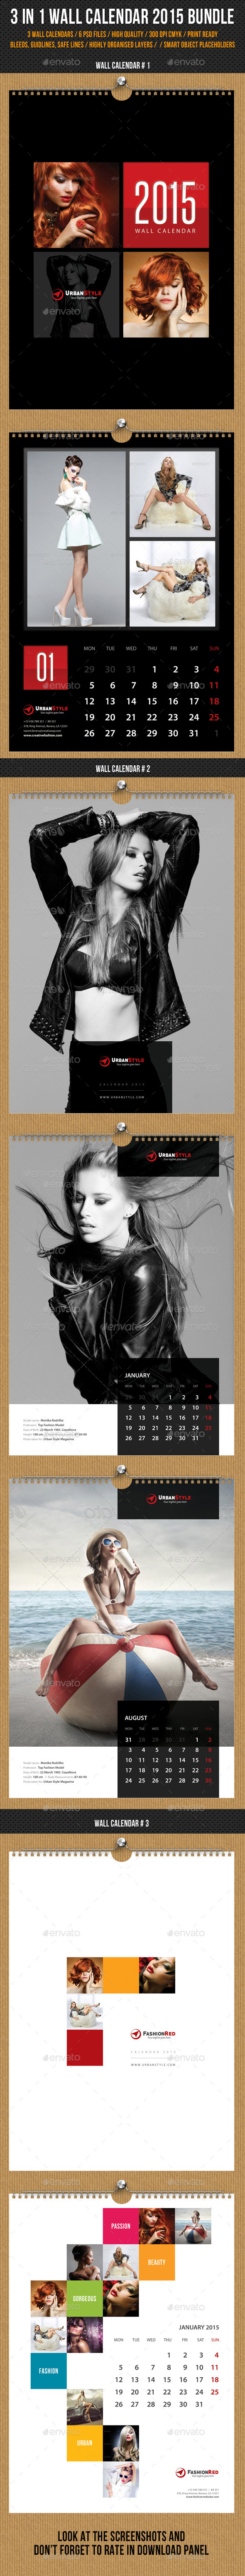 GraphicRiver 3 in 1 Wall Calendar 2015 Bundle V10 9973576